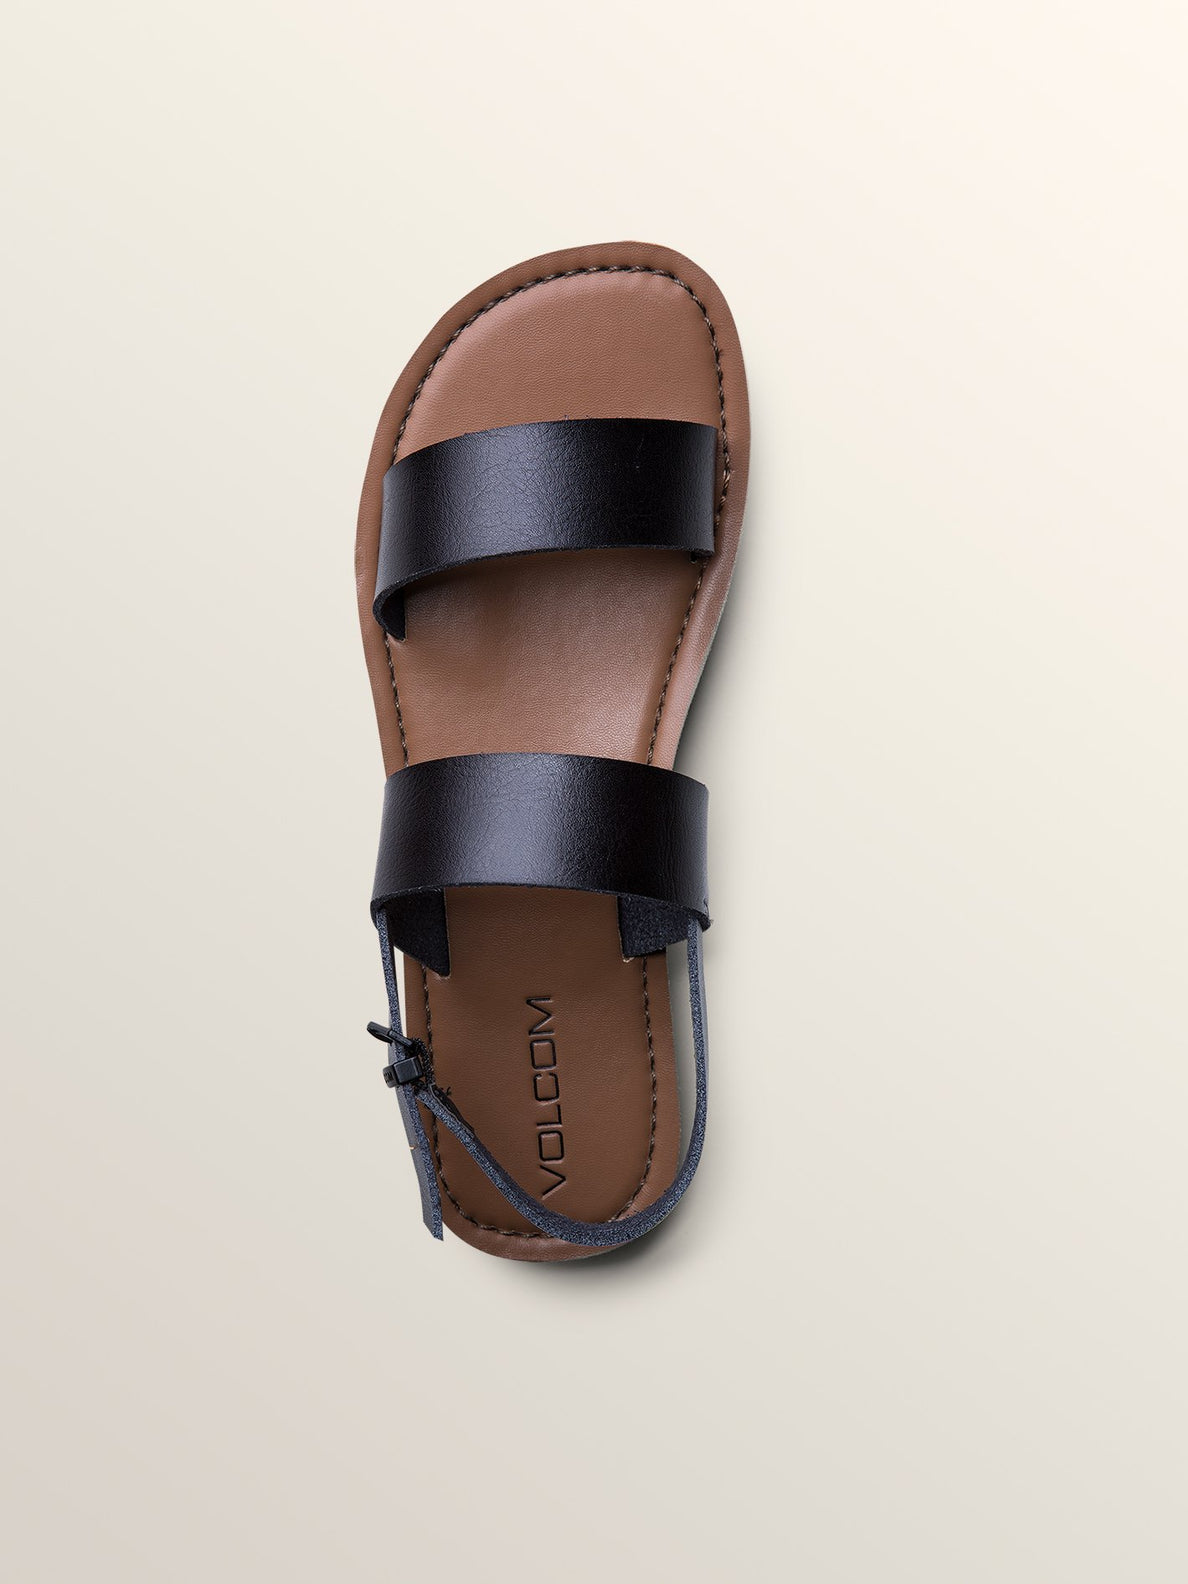 Stone Slide Sandals In Black, Alternate View